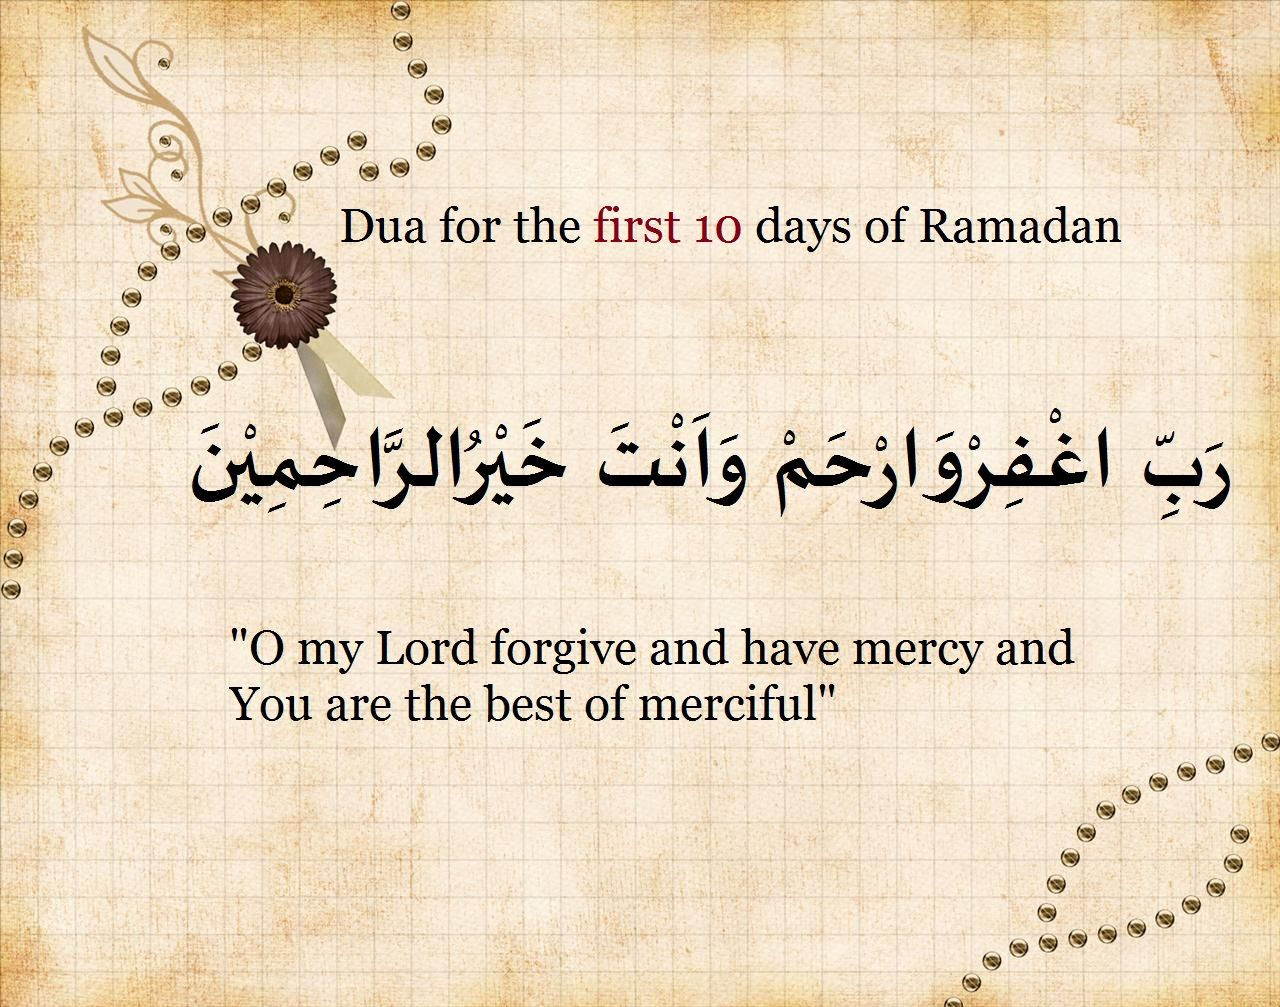 Dua for the first 10 days of Ramadan | Ramadan quotes